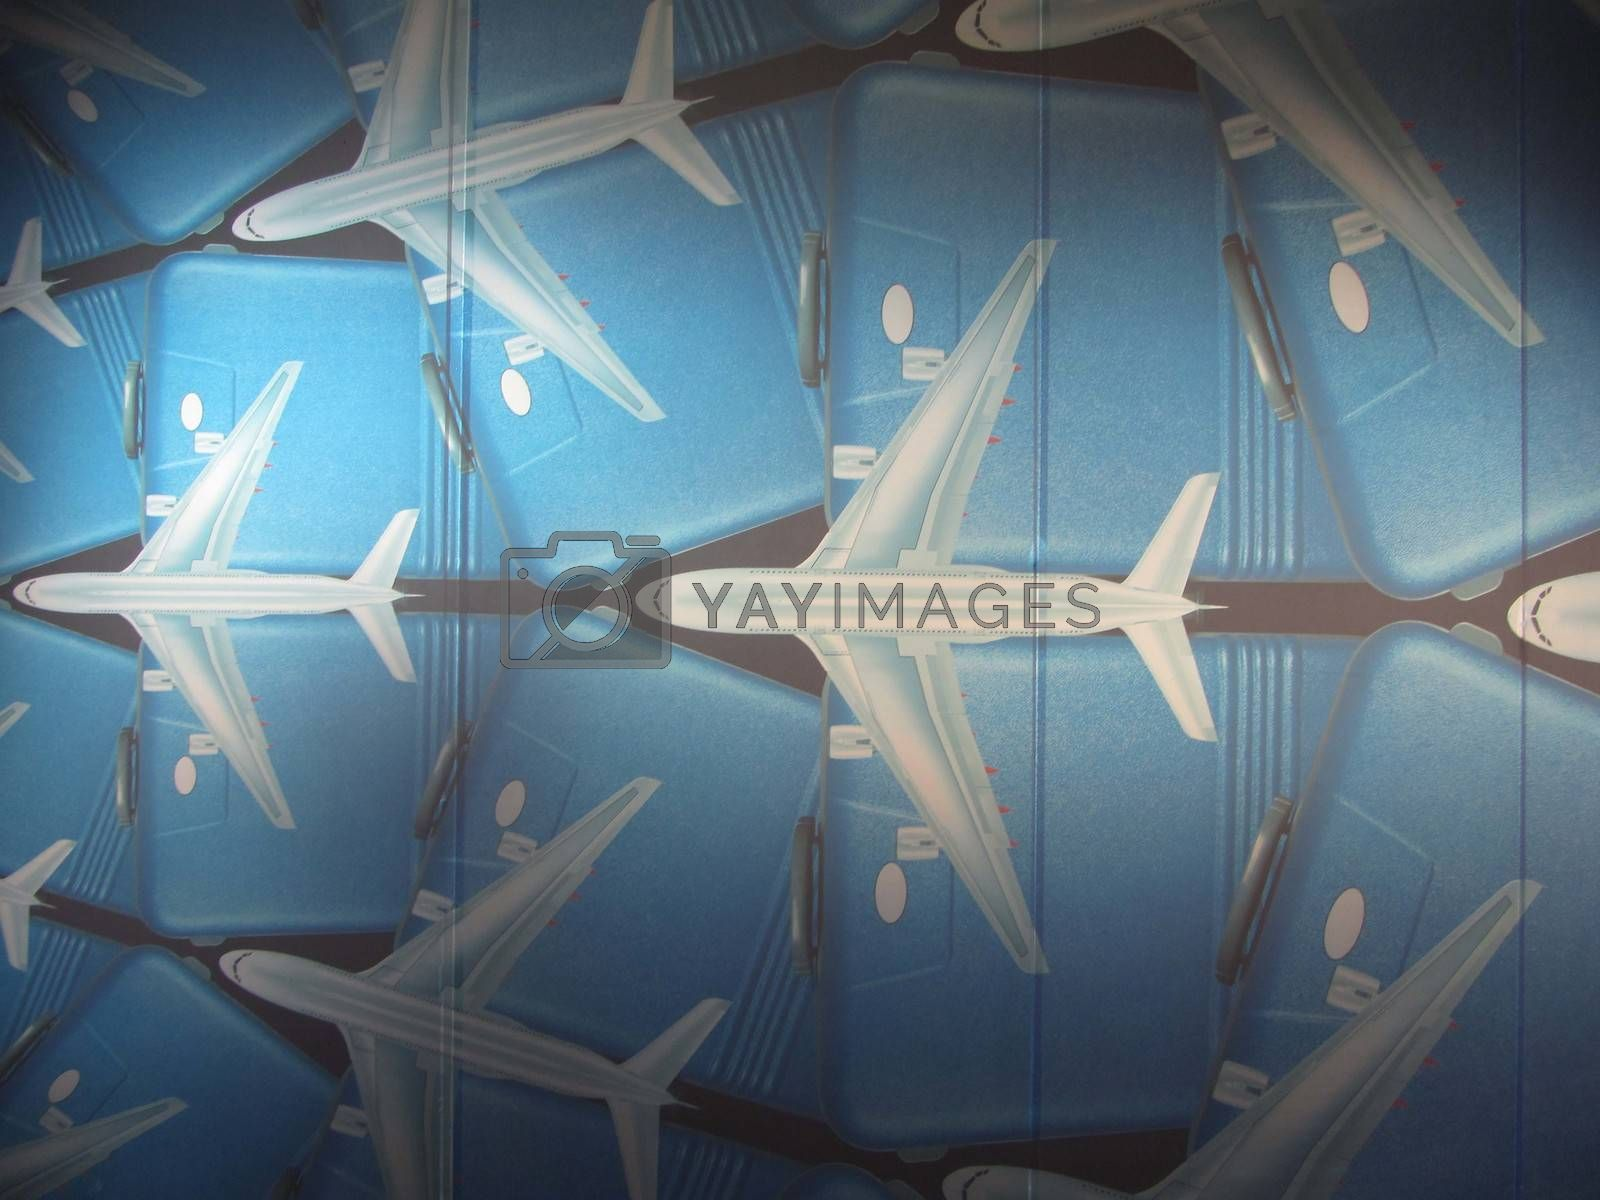 white airplanes and blue suitcases as a symbol for traveling